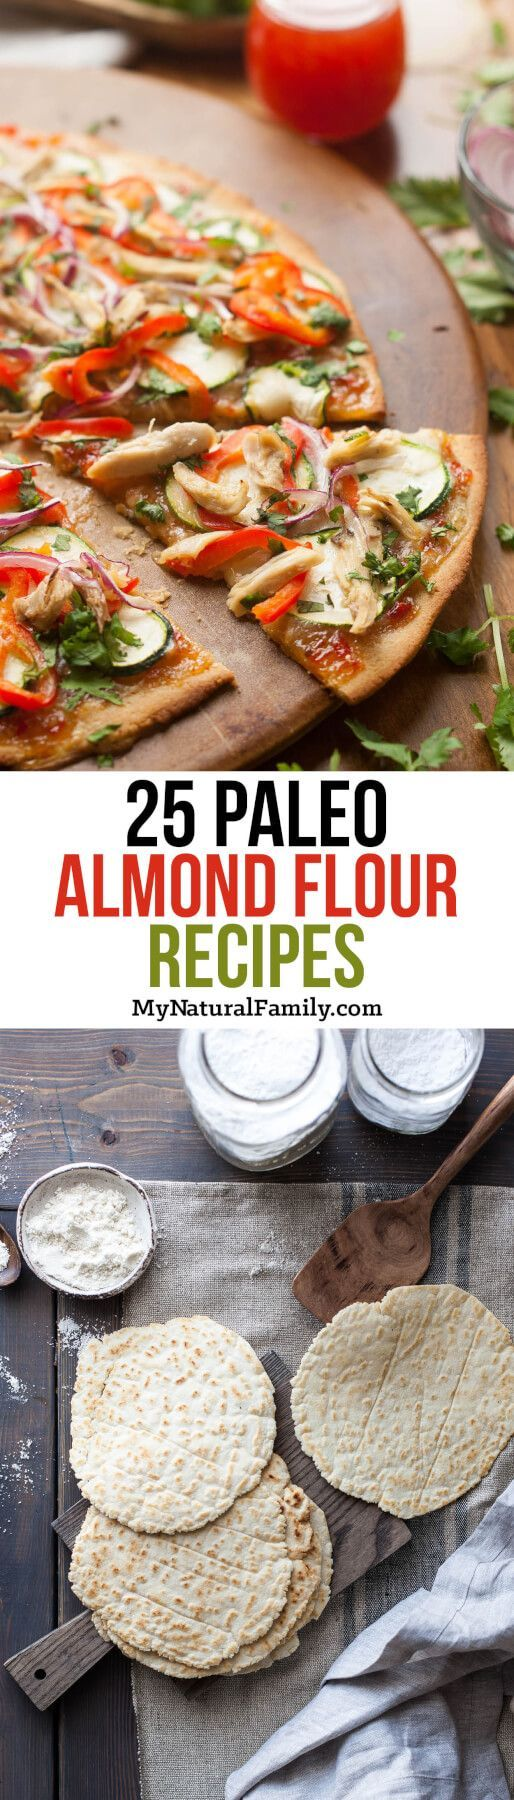 Paleo Almond Flour Recipes (Paleo Dinner Casserole)